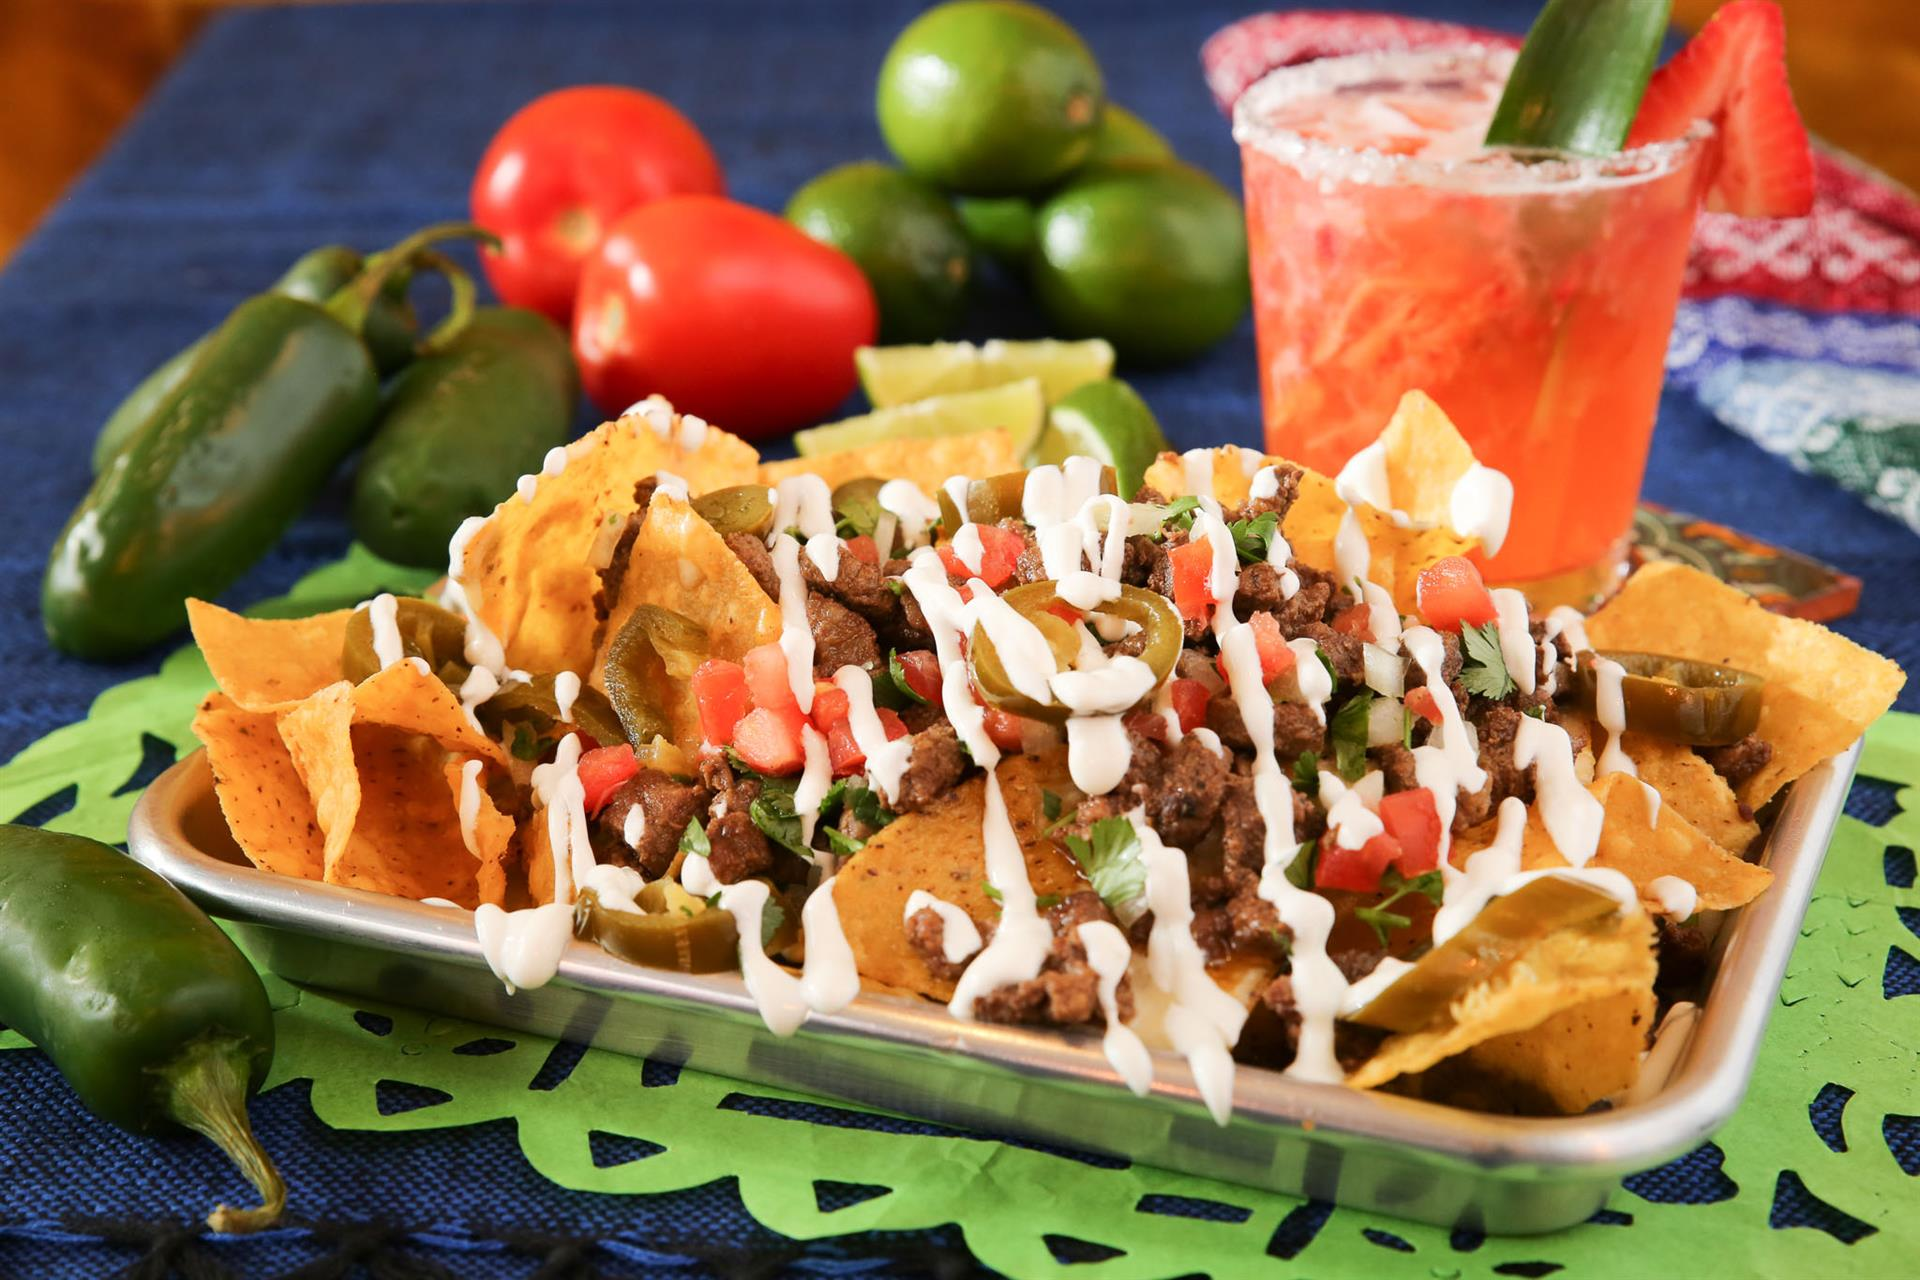 a plate of steak nachos topped with sour cream and a margaritta with a salted rim and a mix of peppers, tomatoes, and limes all on a table